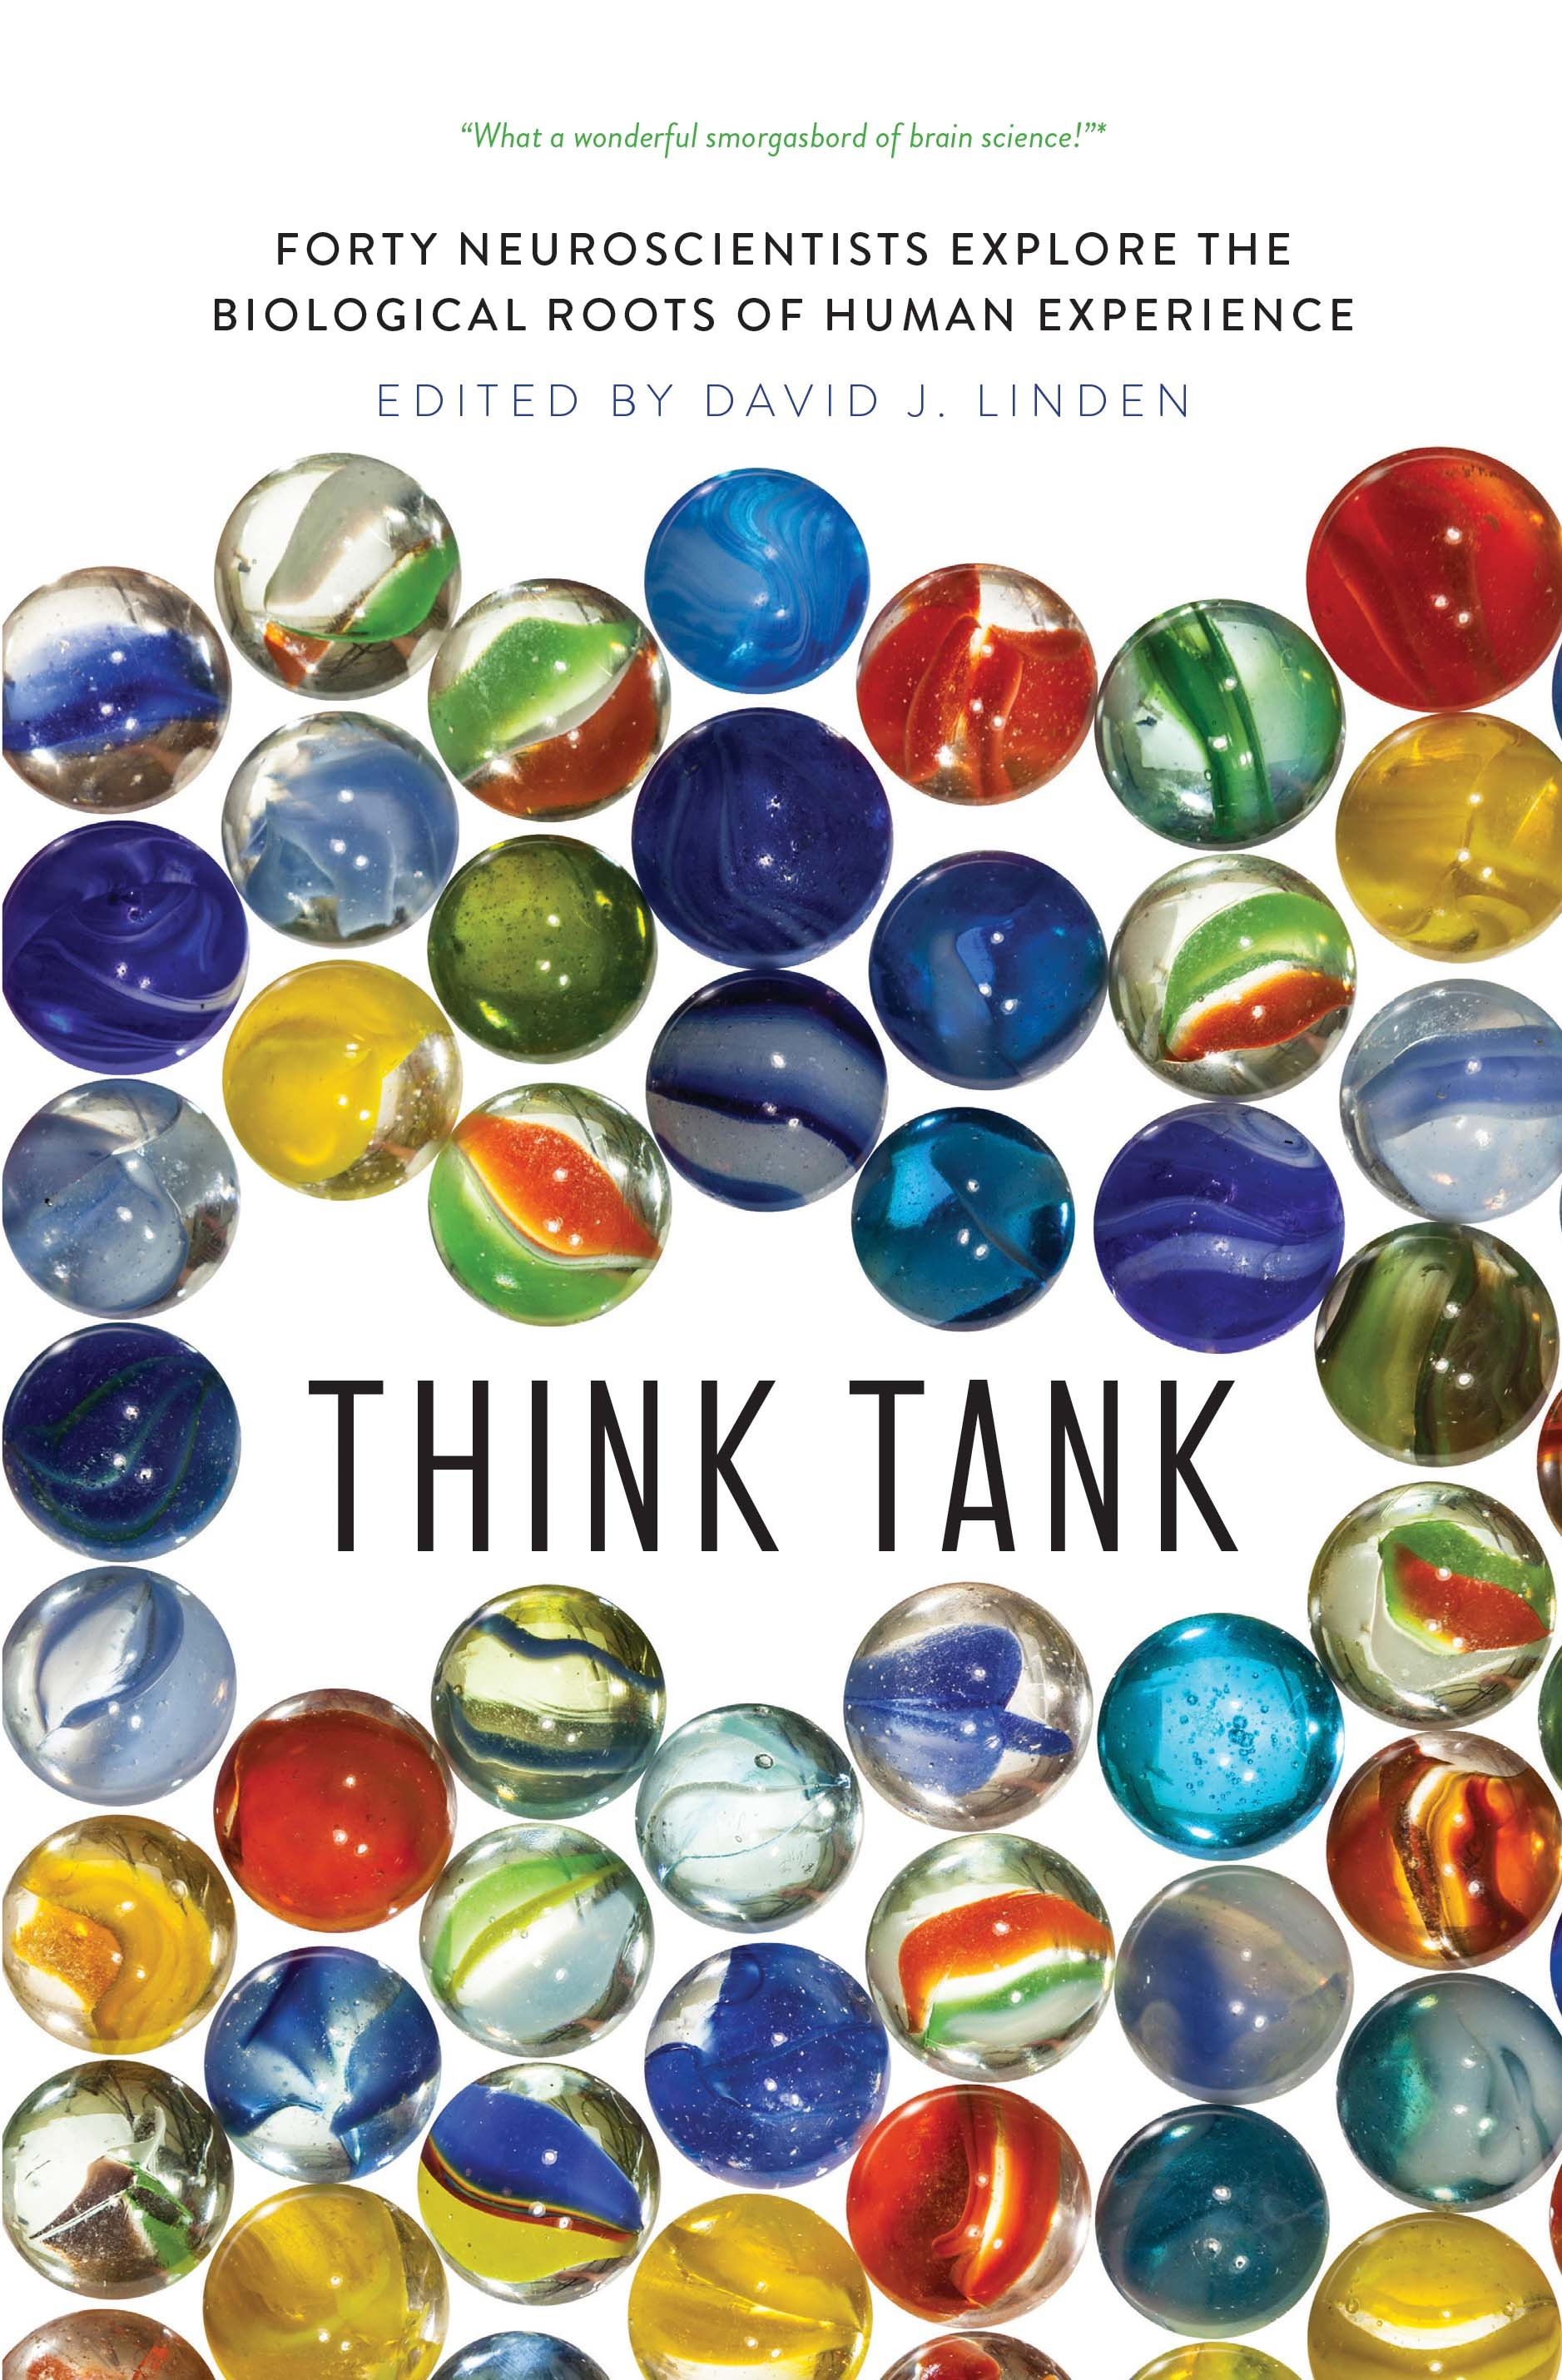 Think Tank Forty Neuroscientists Explore the Biological Roots of Human Experience - David J Linden